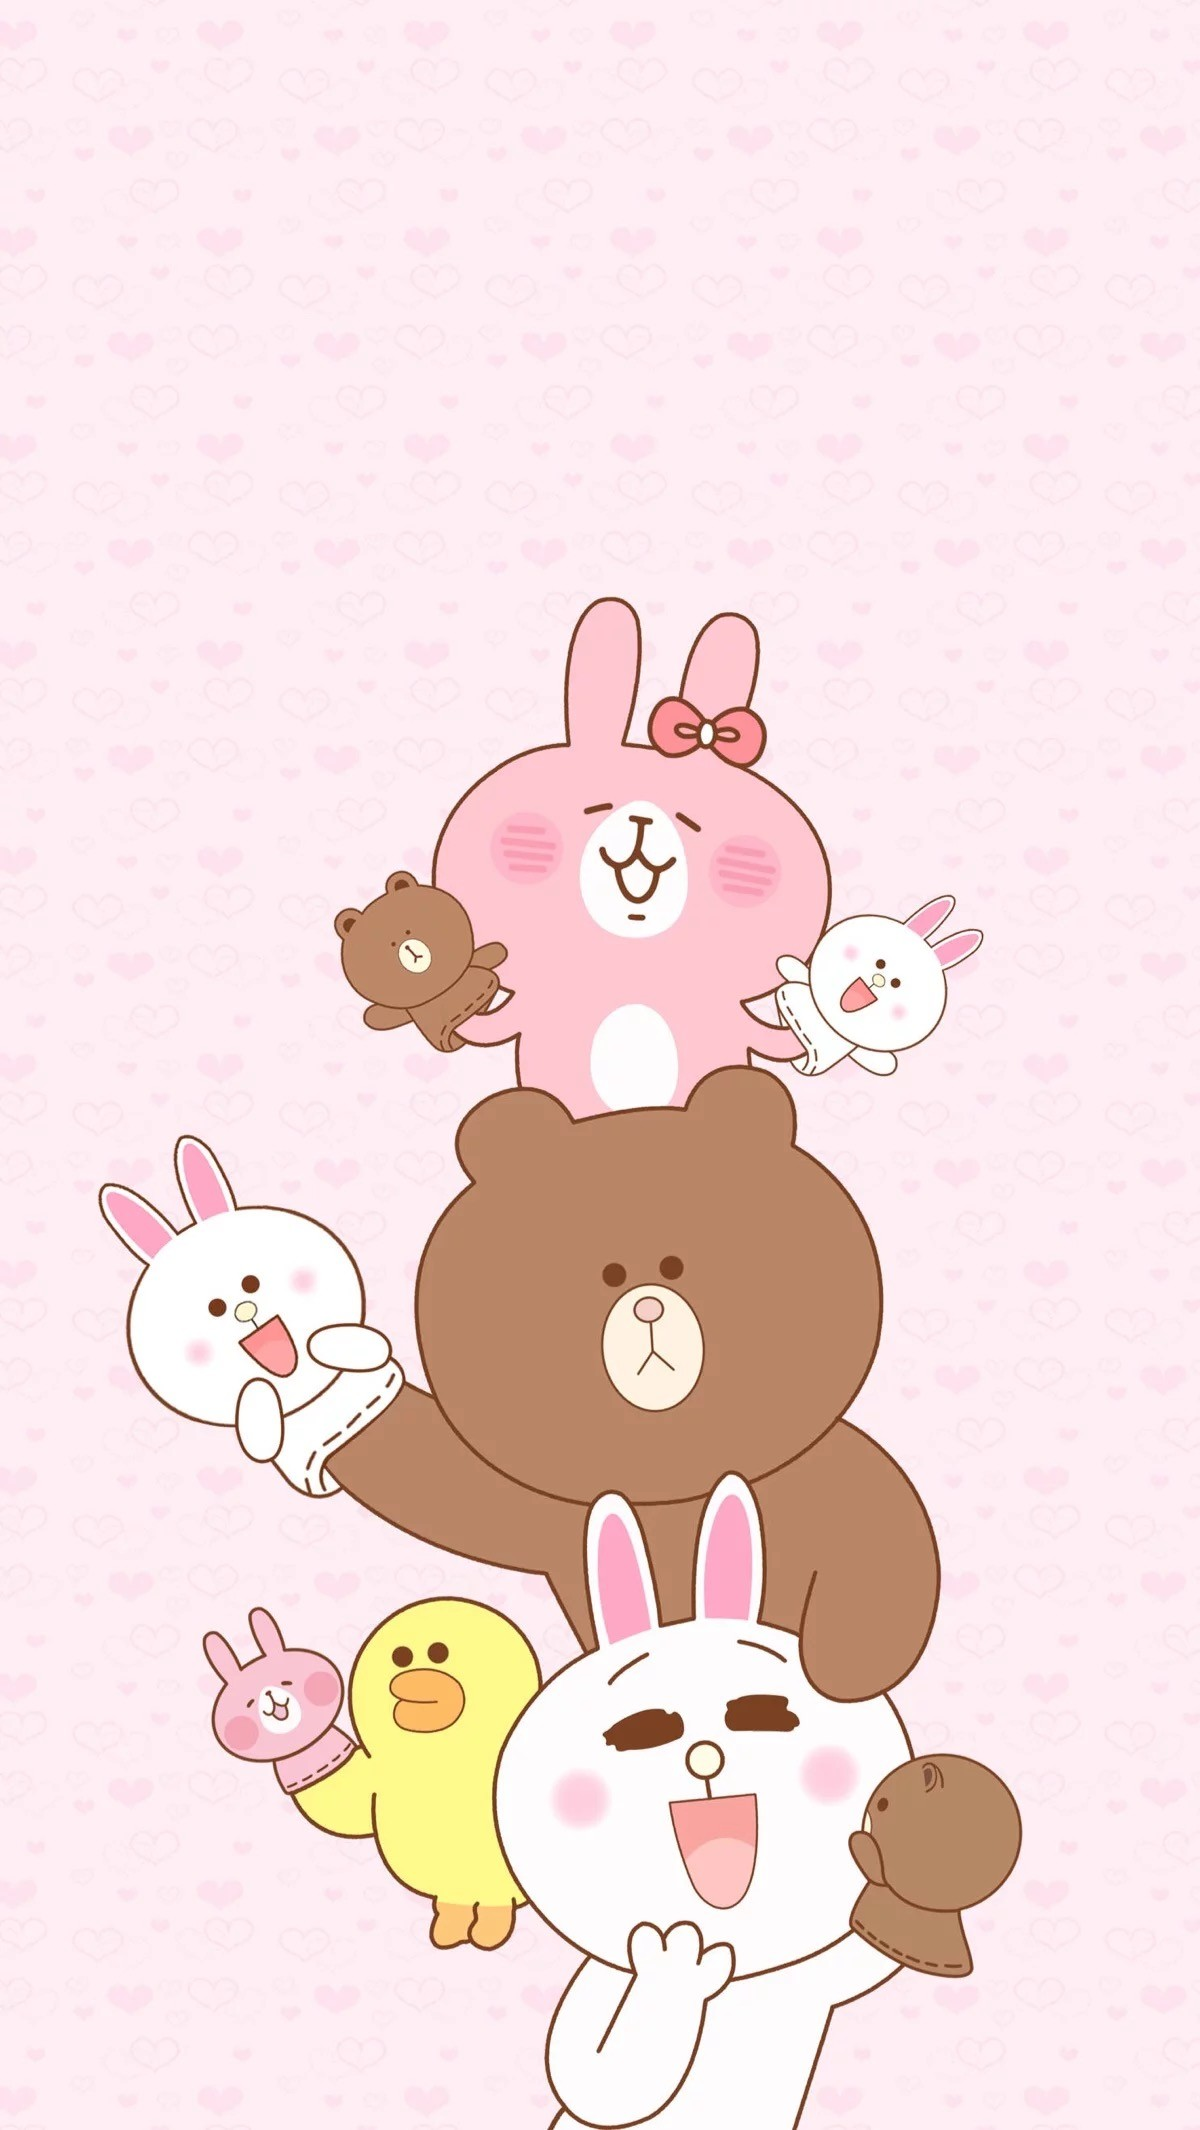 Sfondi pc kawaii